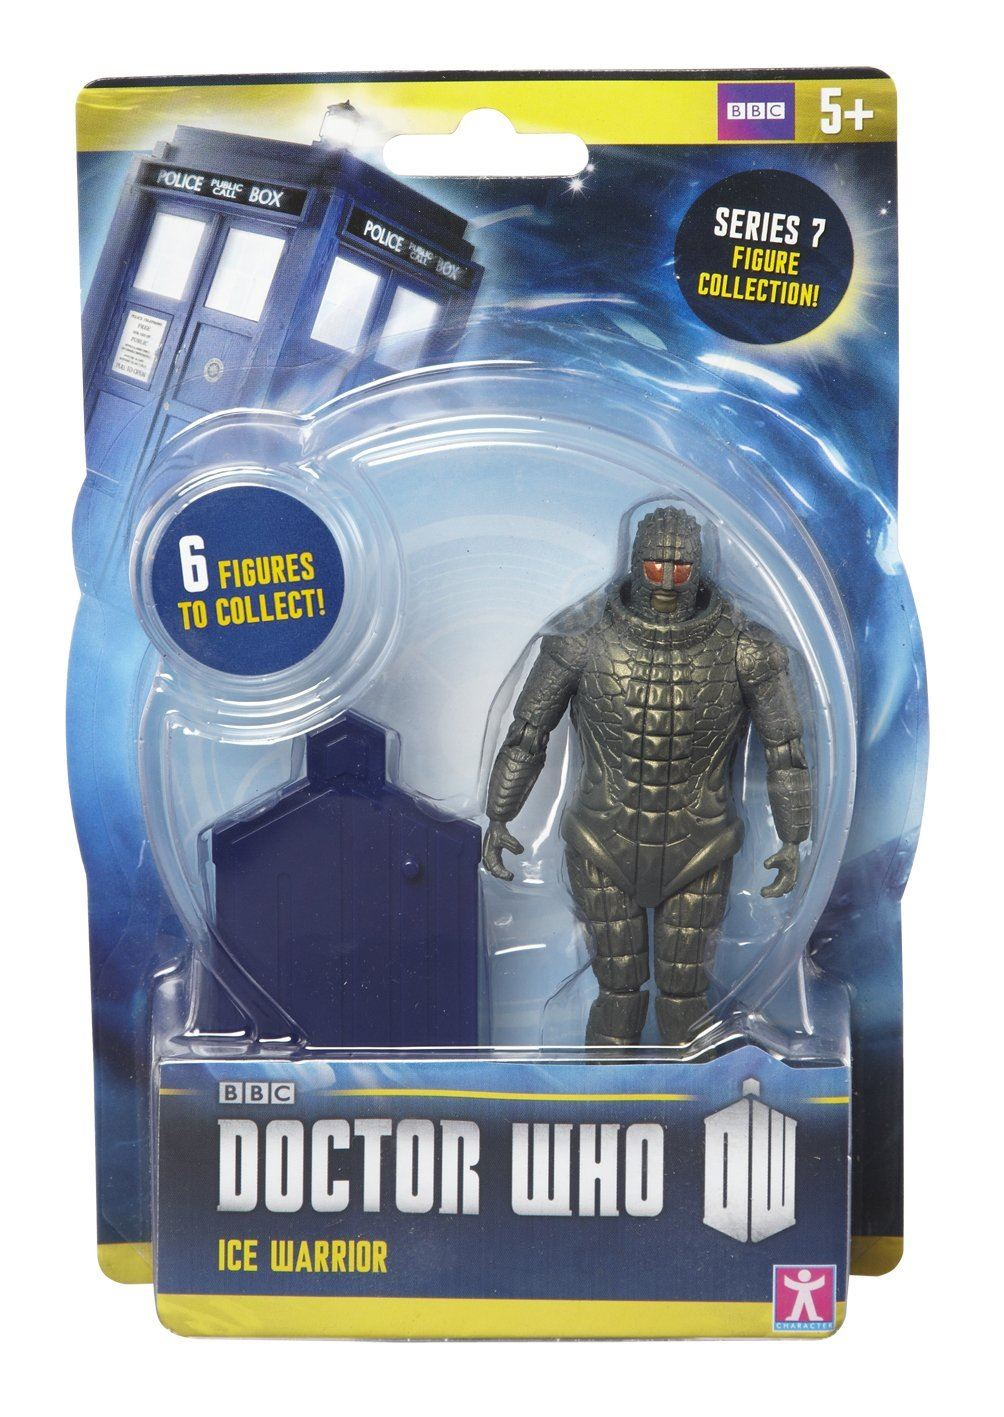 Doctor-Who-Series-7-Figure-Collection-3-3-4-inch-DALEK-CYBERMAN-CLARA-OR-MORE